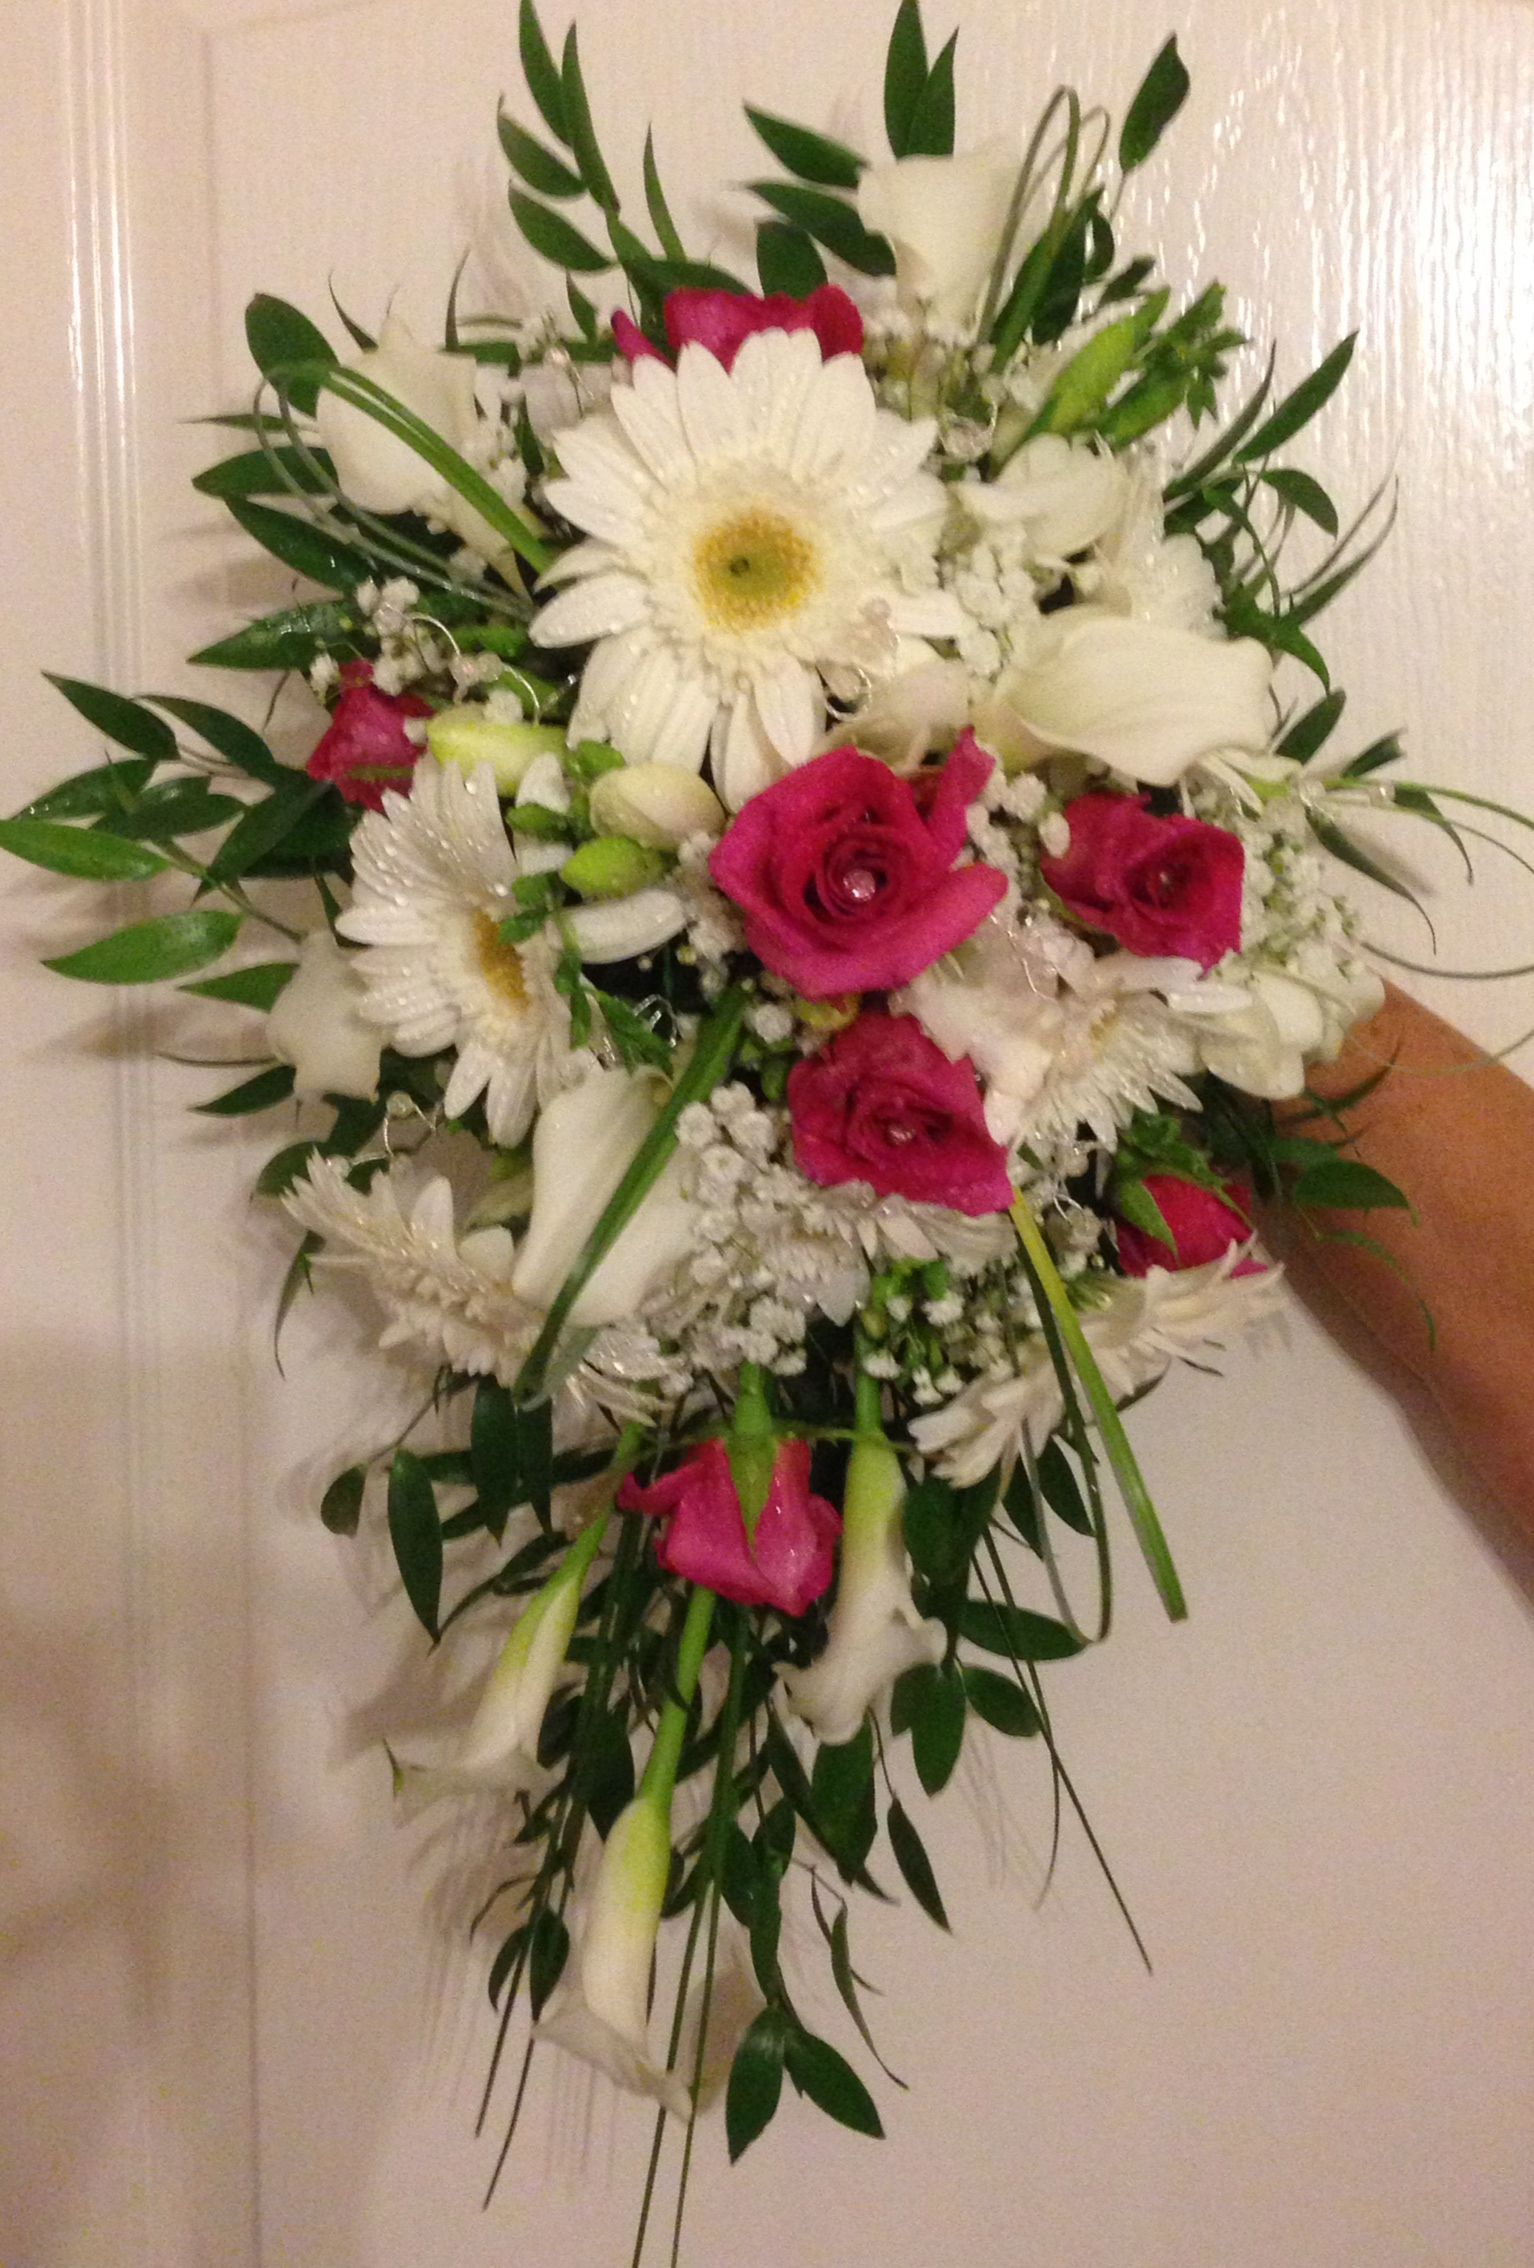 Small Fresh Flower Bridal Bouquet Gerberas Roses Calla Lilies And